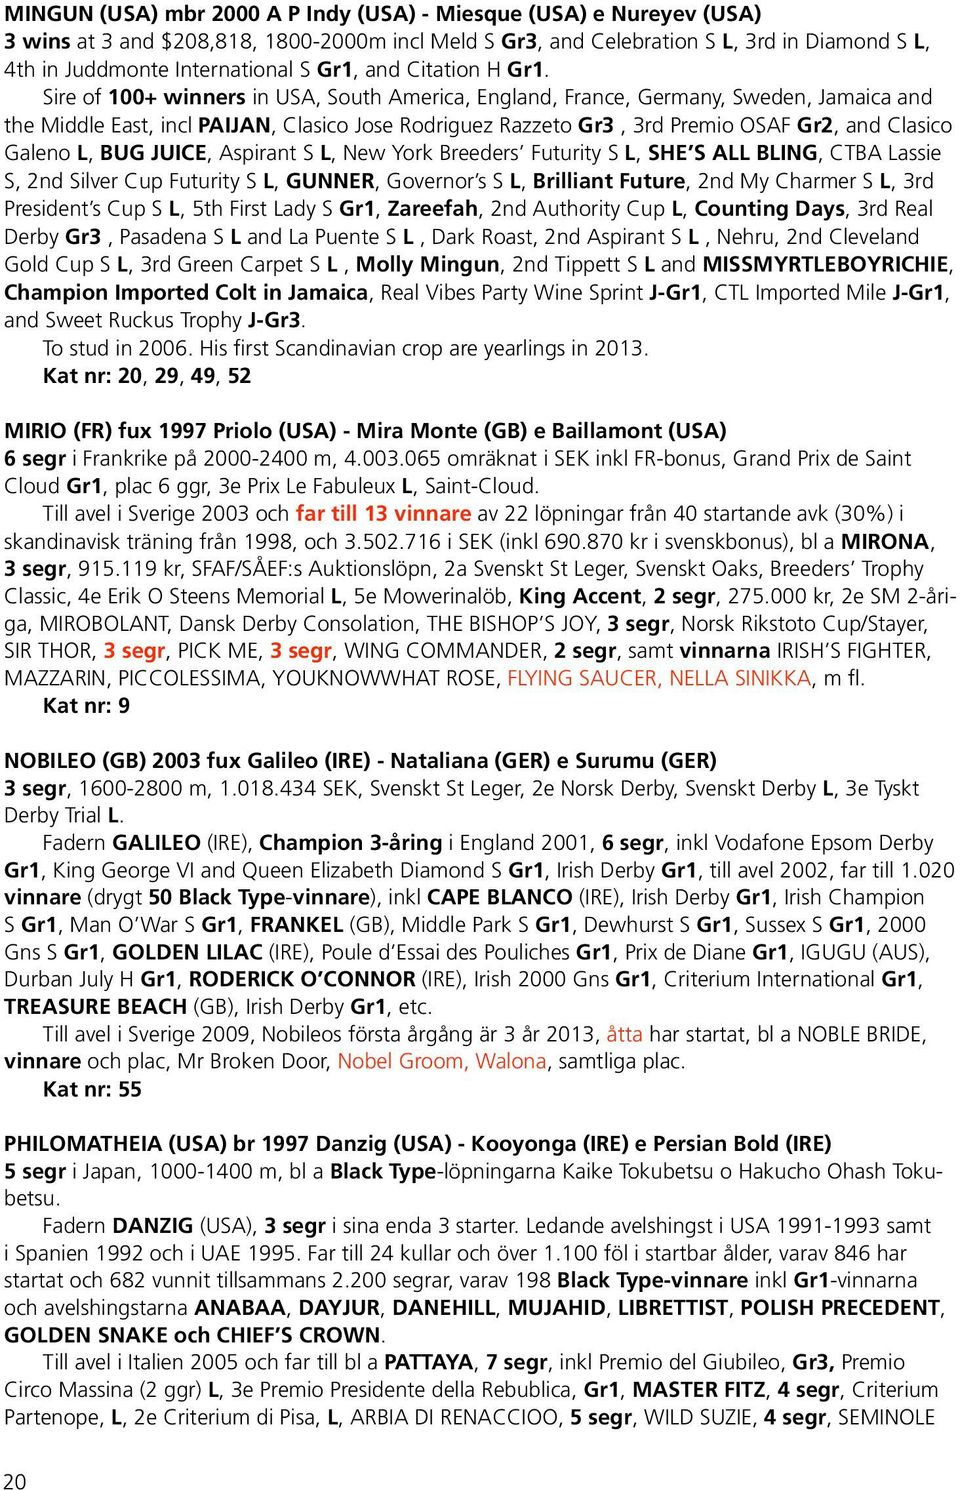 Sire of 100+ winners in USA, South America, England, France, Germany, Sweden, Jamaica and the Middle East, incl PAIJAN, Clasico Jose Rodriguez Razzeto Gr3, 3rd Premio OSAF Gr2, and Clasico Galeno L,